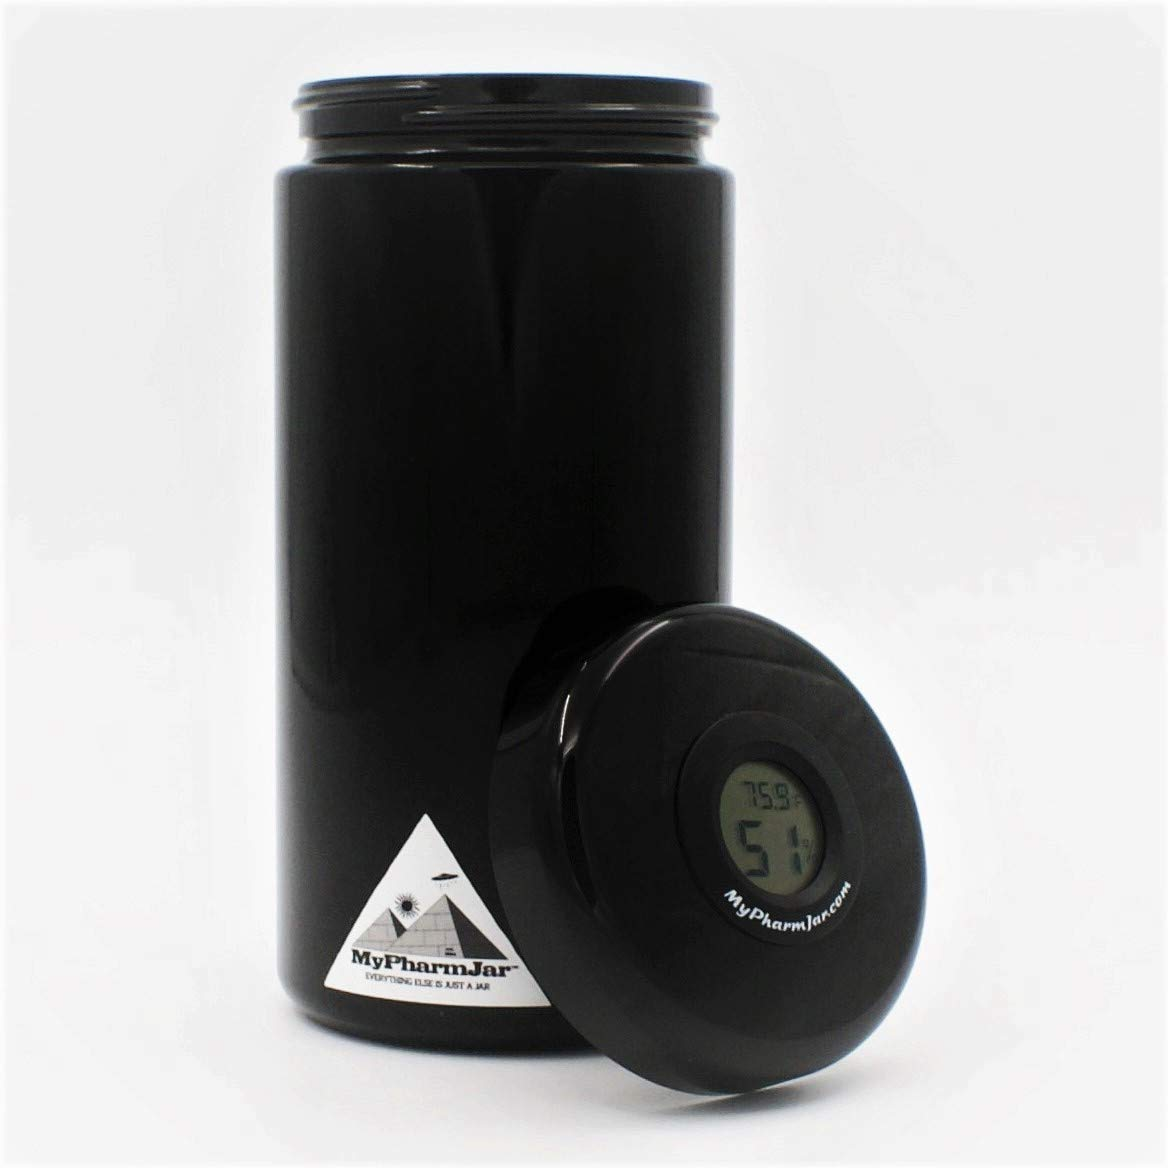 Glass Herb Stash Jar, Smell Proof, Air-tight herb container, Holds 2oz with embedded temp/humidity sensor in lid